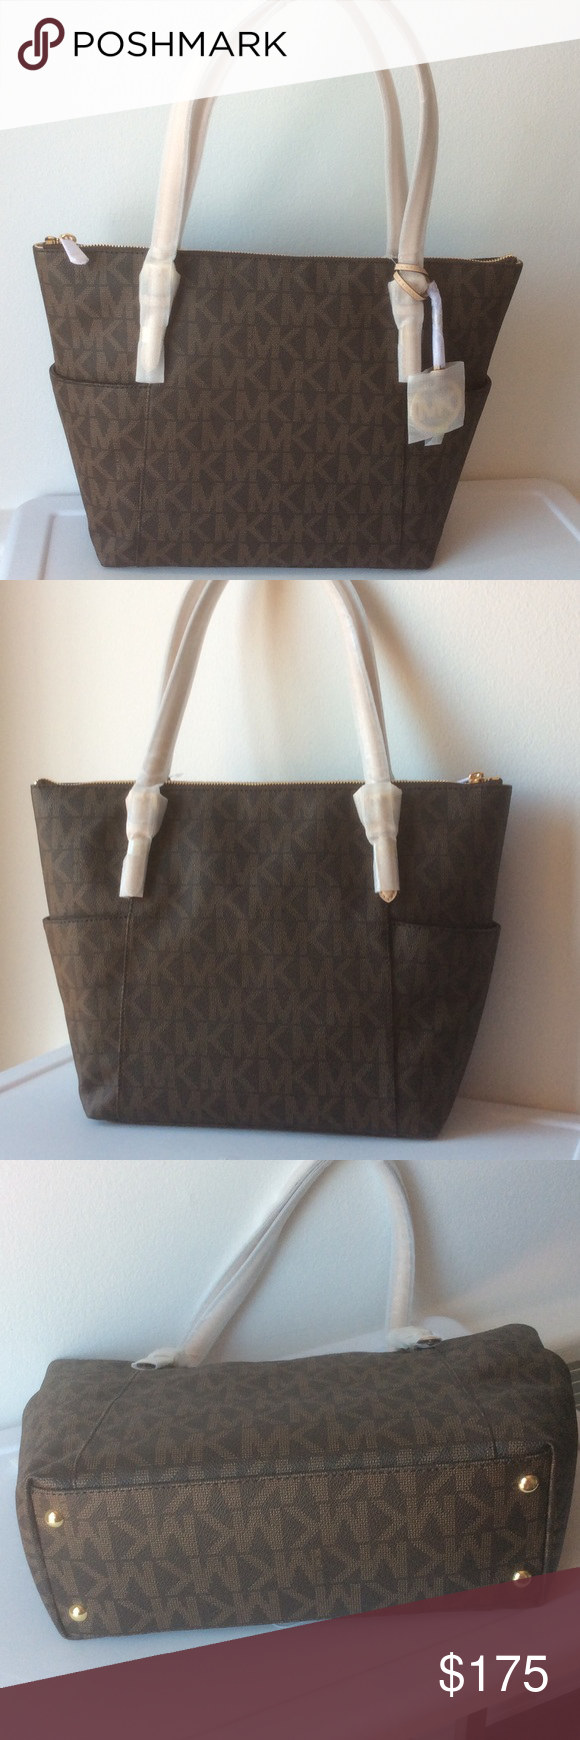 🆕Michael Kors Jet Set EW TZ Tote Always chic and always in style ... 8d9b78088c